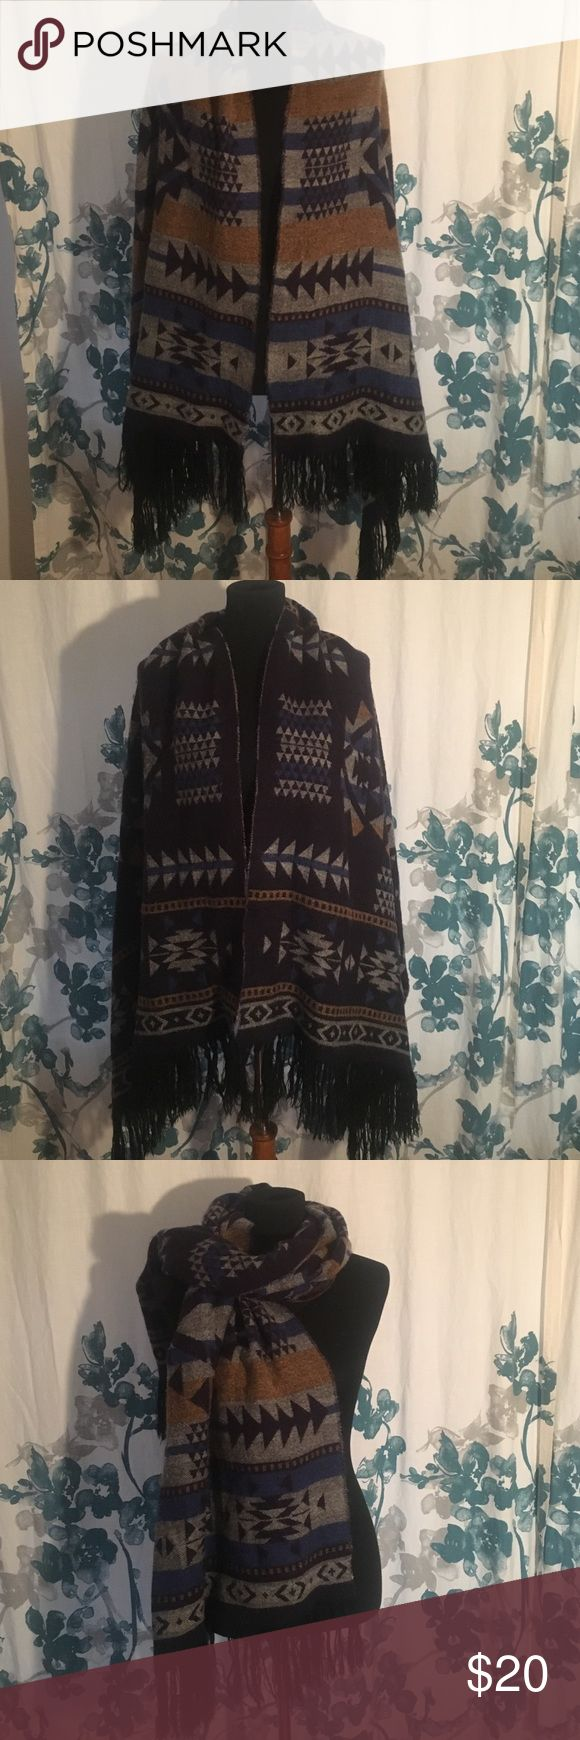 Reversible, warm scarf Why eat up closet space with several scarves when this one is a two for one deal!!! Yellow, grey, shades of blue with black fringe on the bottom. Aztec designs throughout. This scarf does not fail to impress!! Small imperfection depicted in picture 4. Not noticeable when worn! Accessories Scarves & Wraps